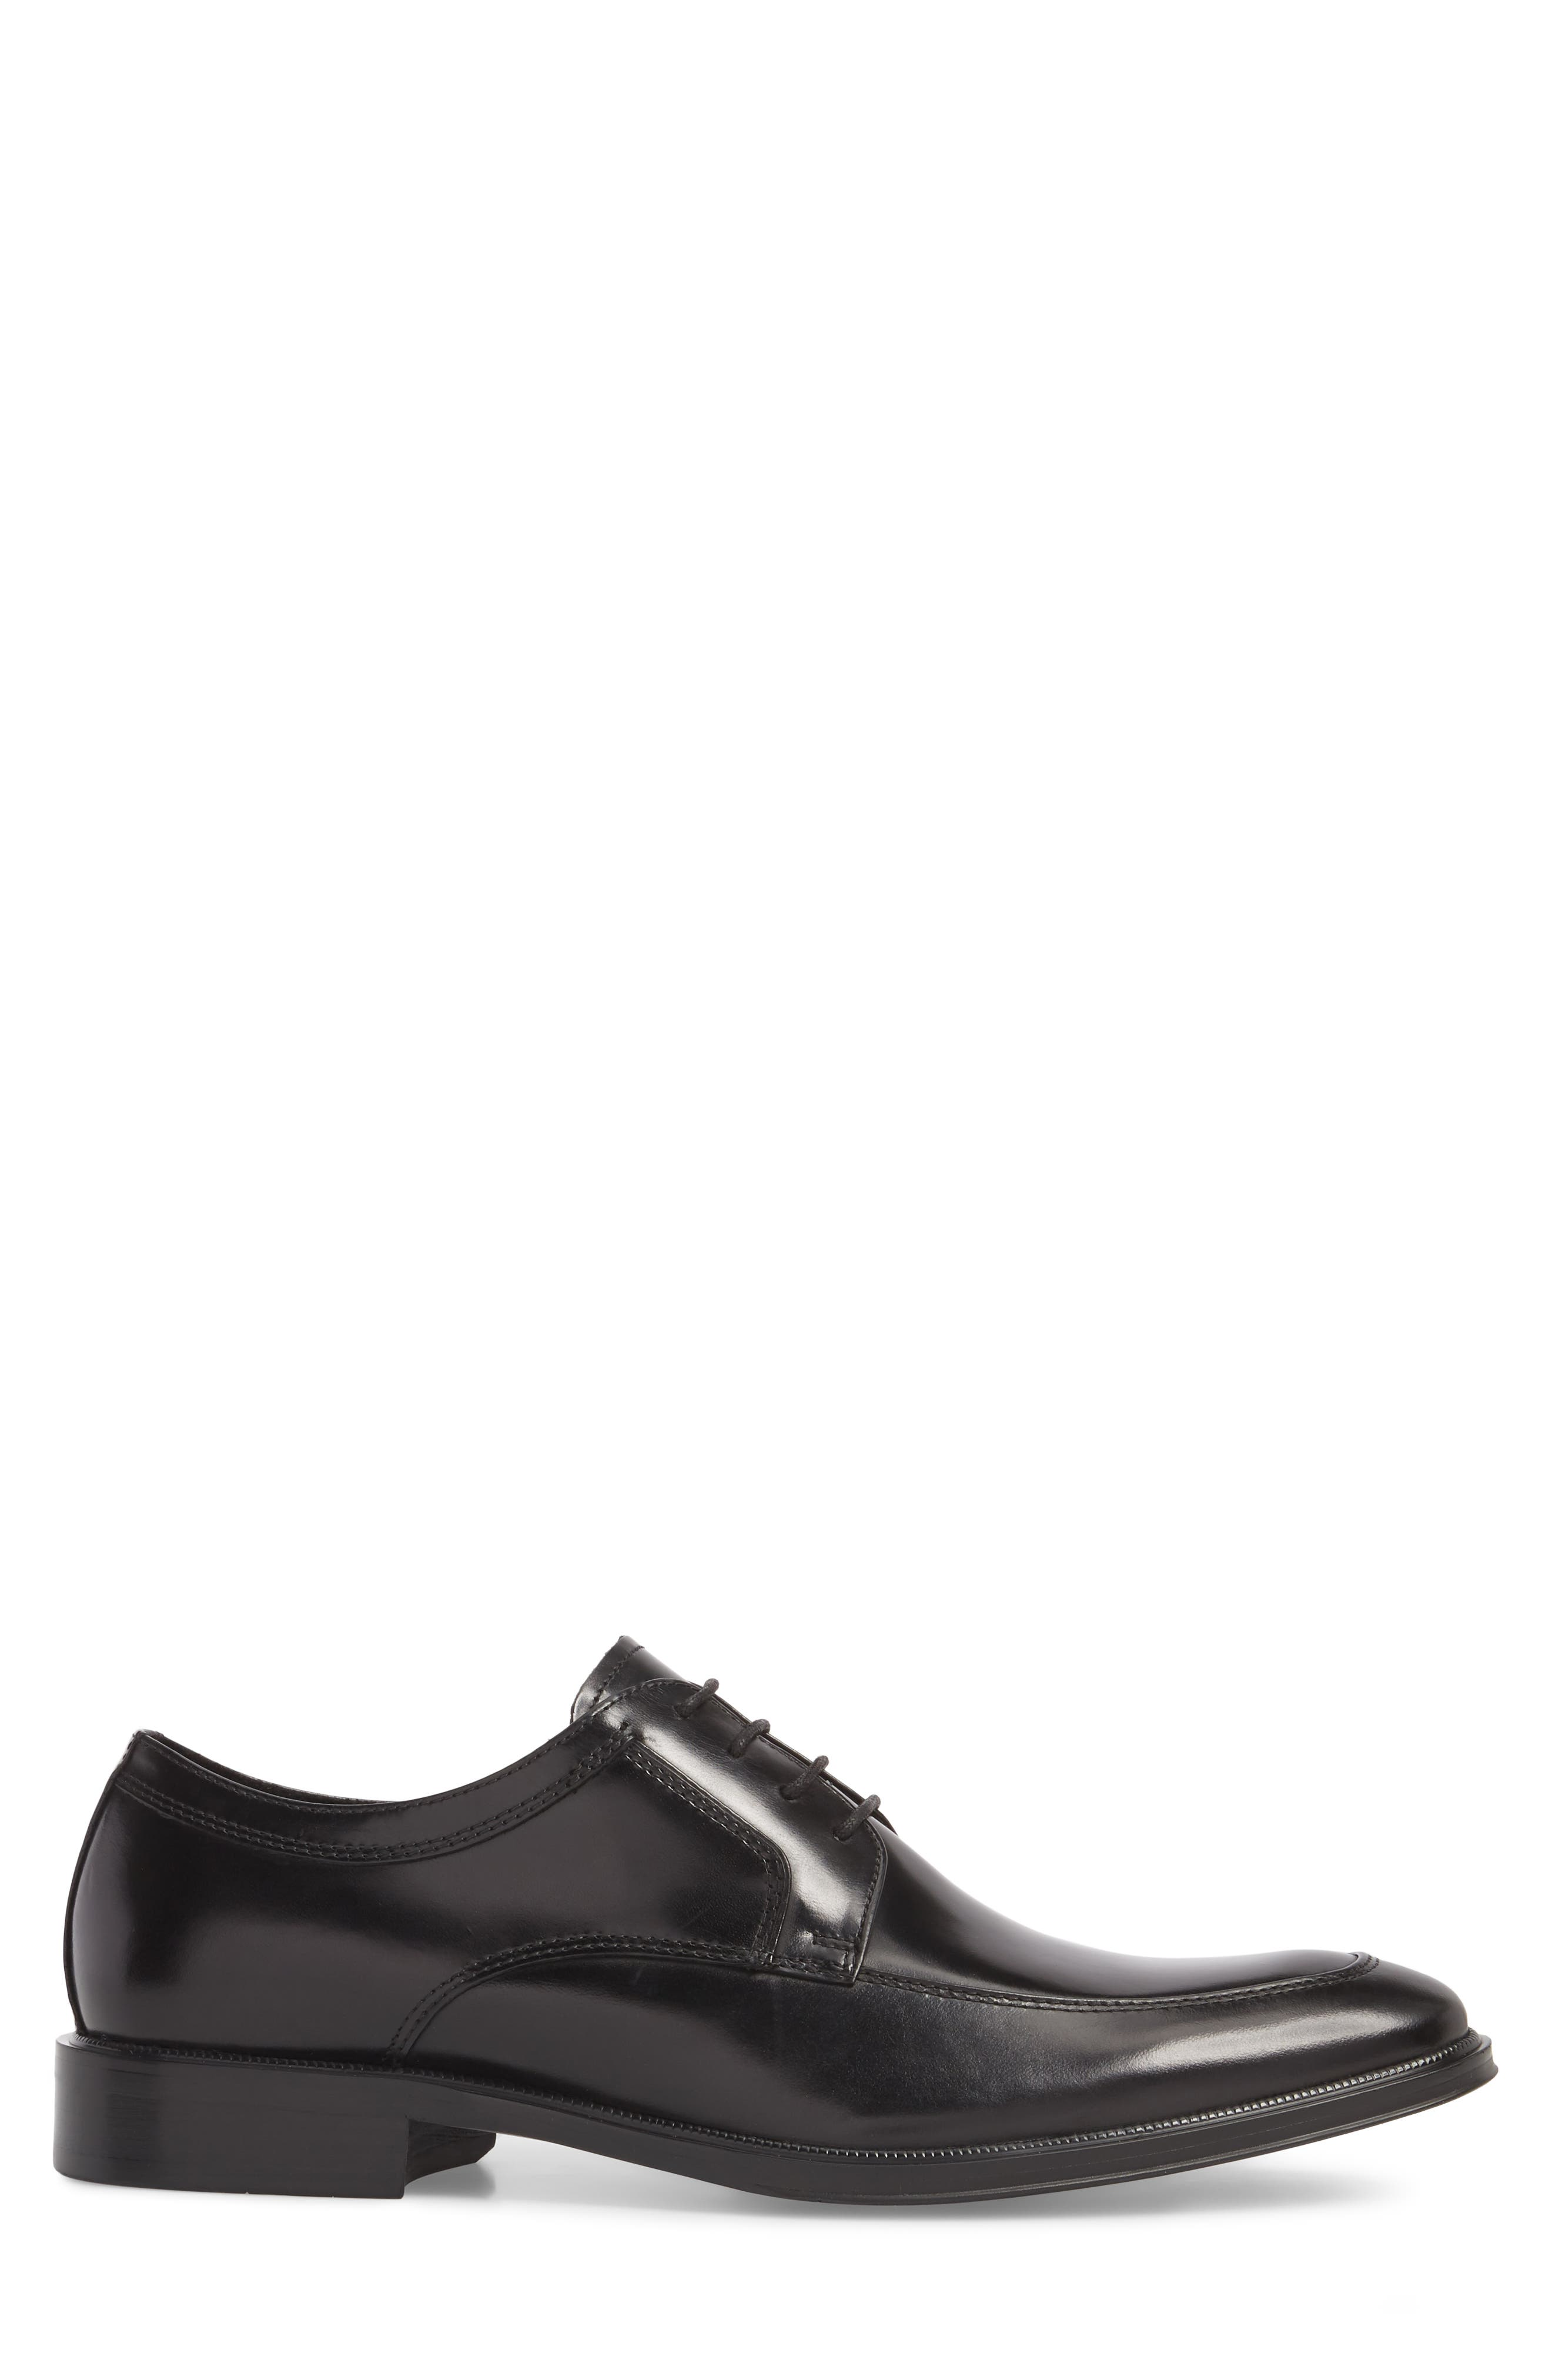 KENNETH COLE NEW YORK, Tully Apron Toe Derby, Alternate thumbnail 3, color, BLACK LEATHER